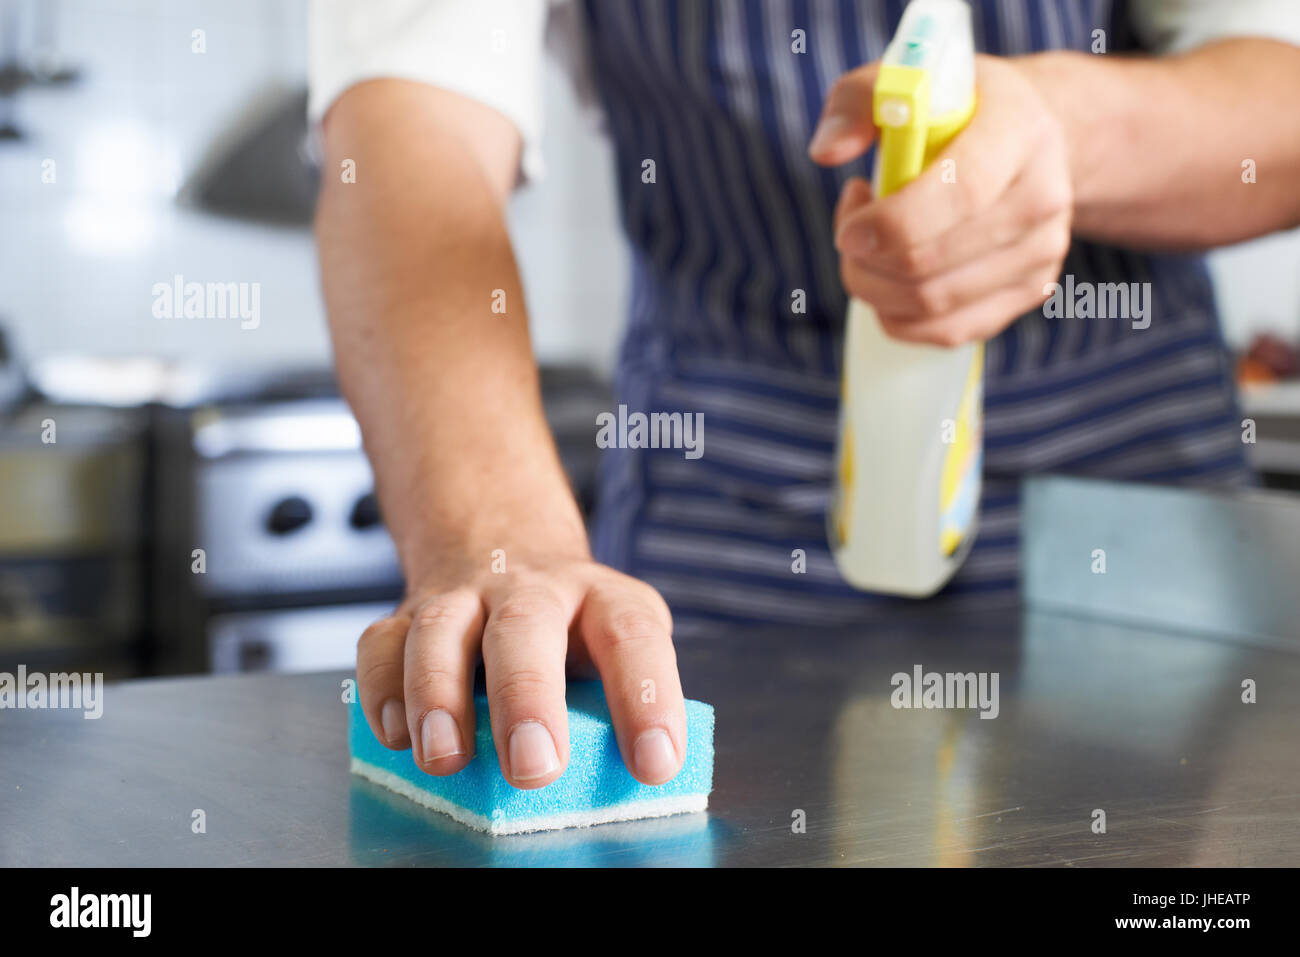 Close Up Of Worker In Restaurant Kitchen Cleaning Down After Service - Stock Image